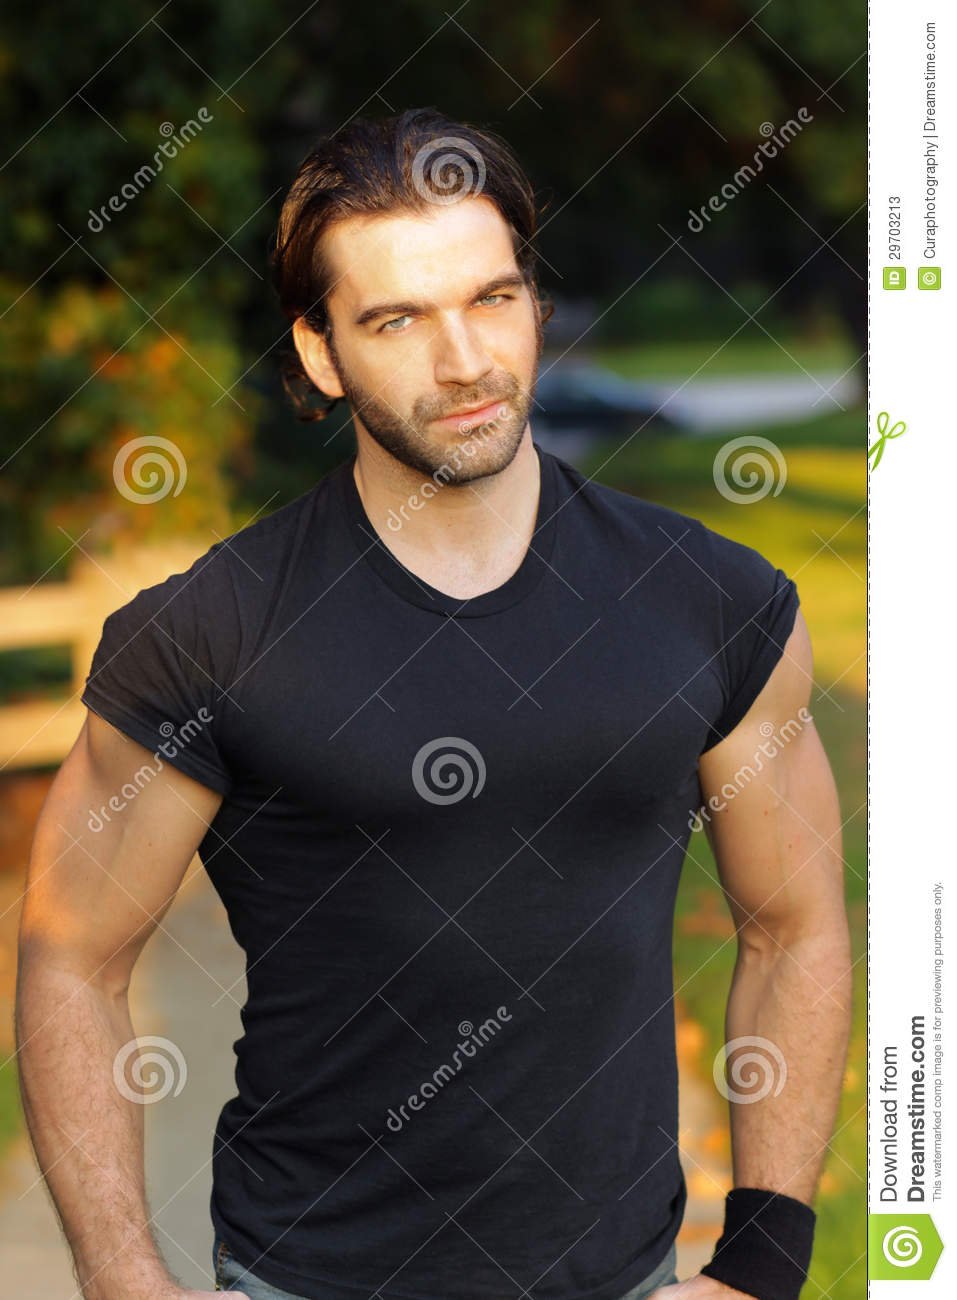 Masculime Hot Guy Stock Photos Image 29703213